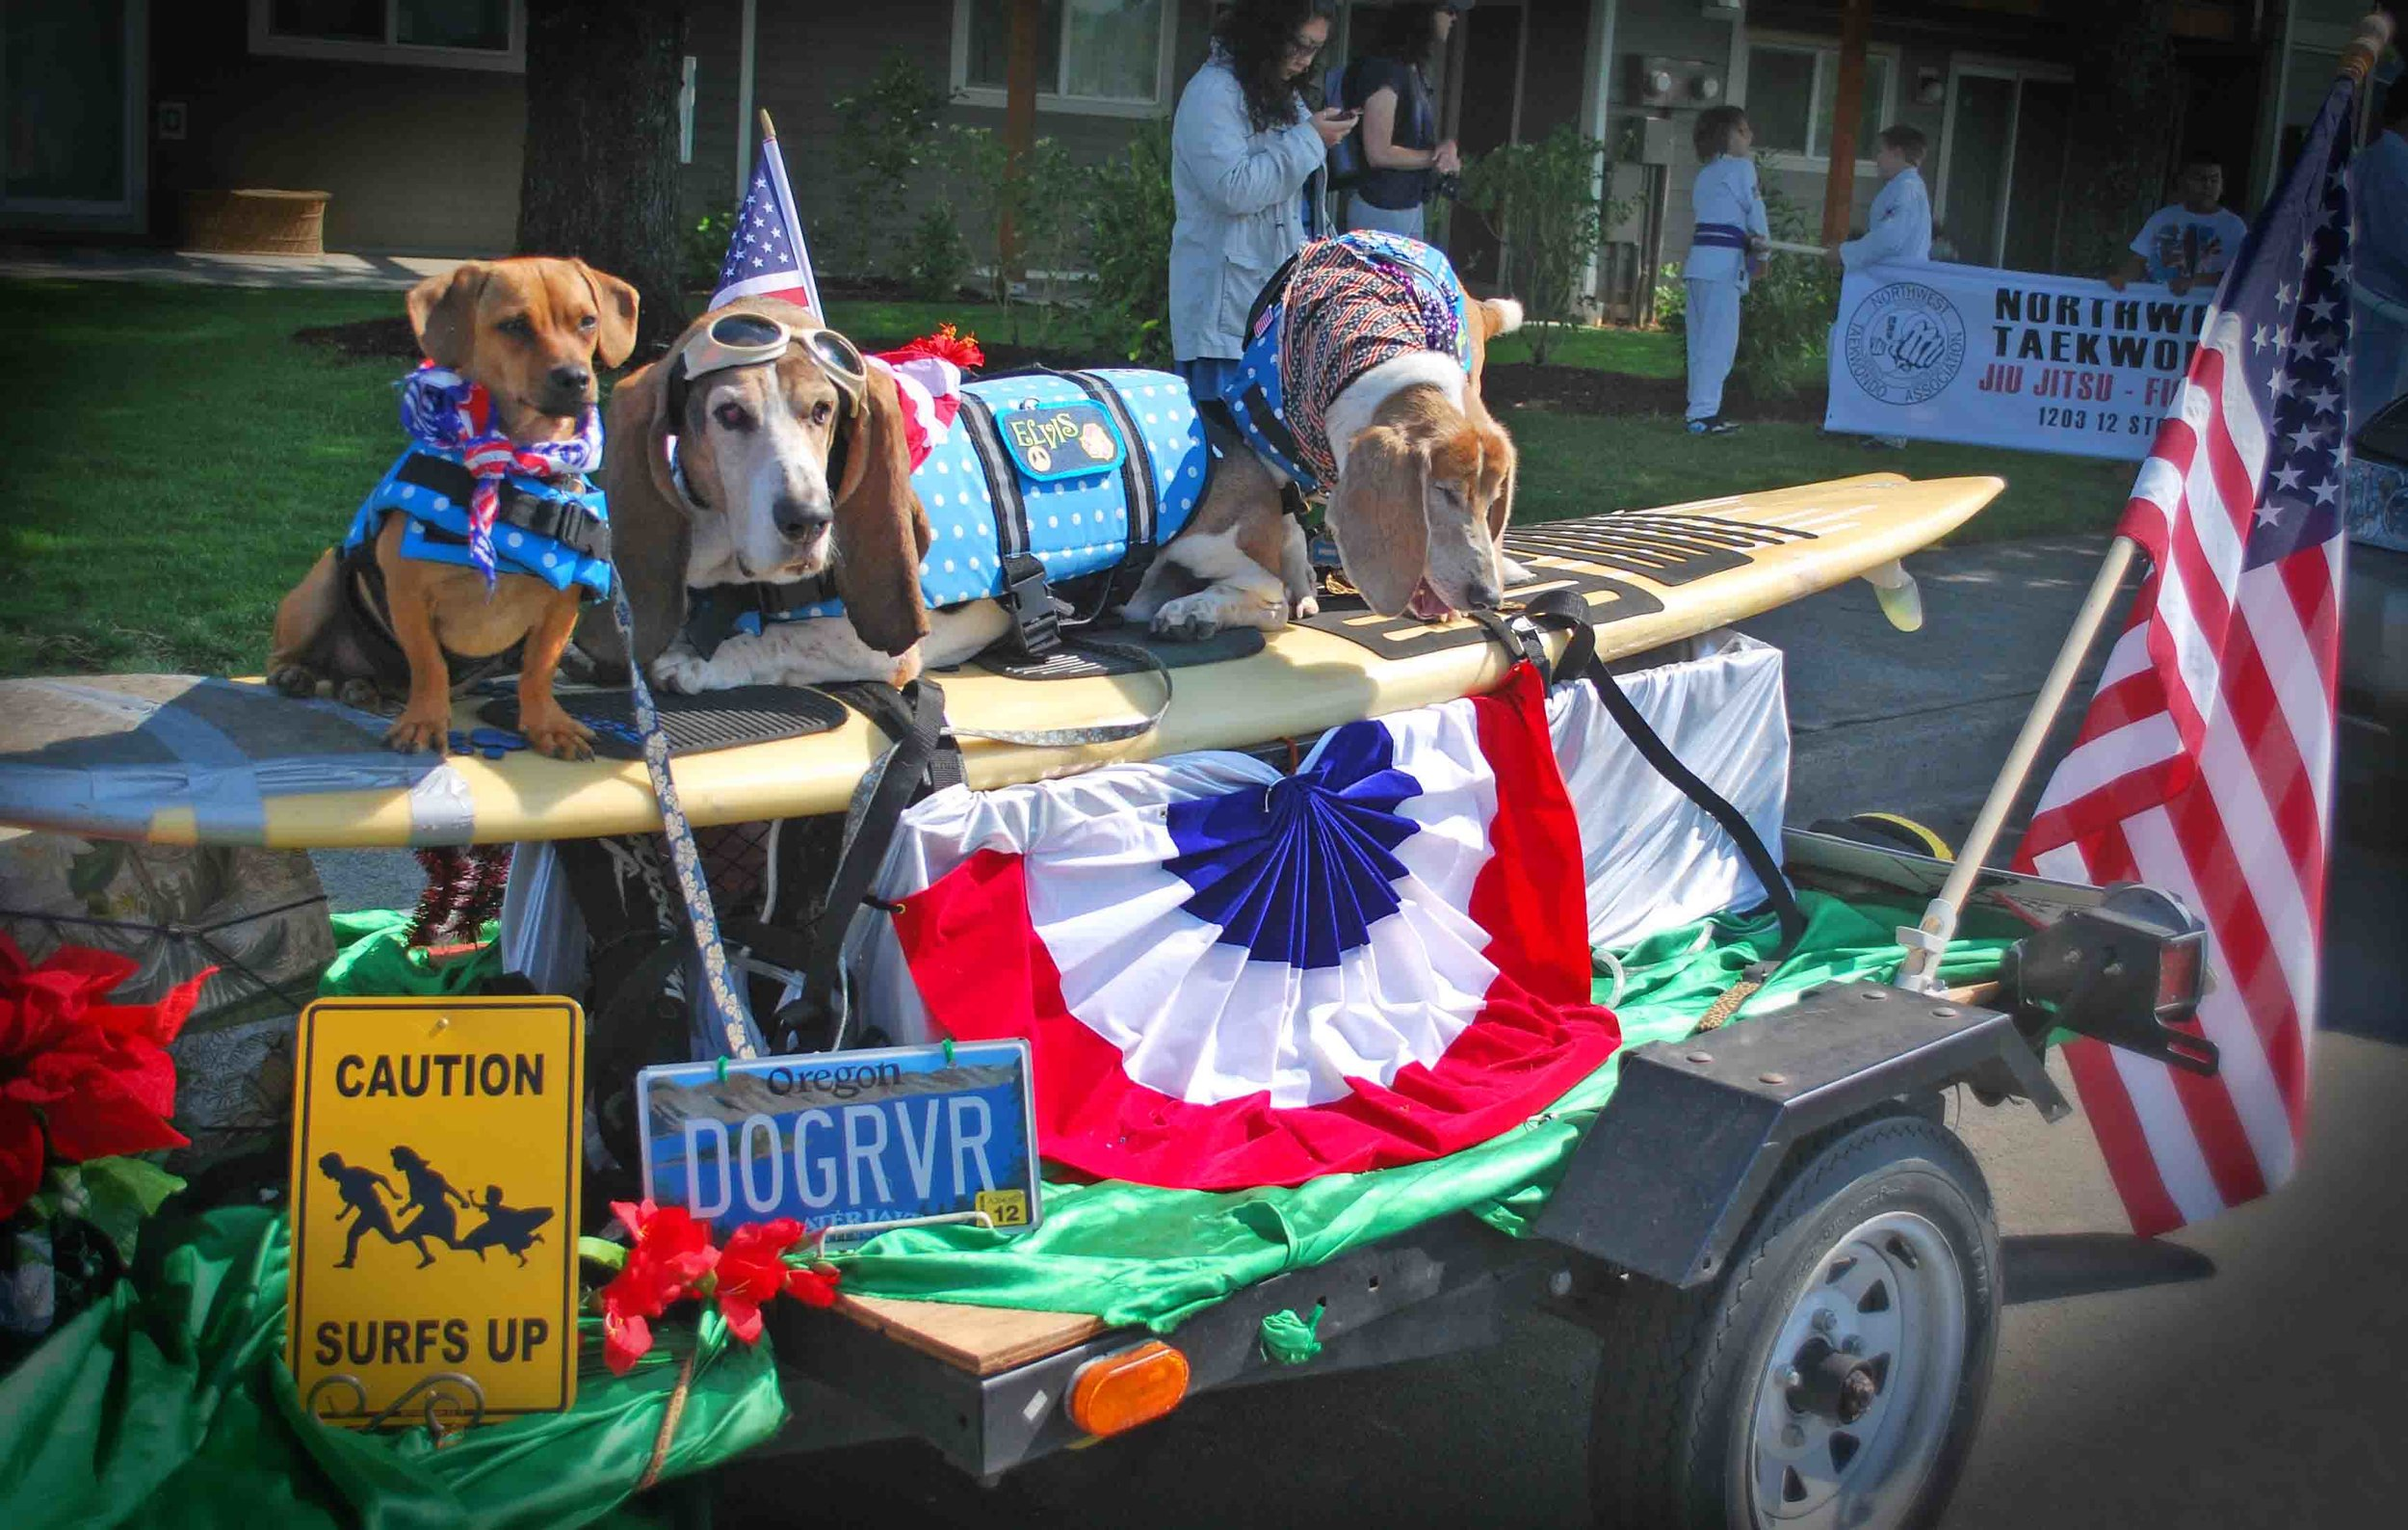 L to R: Doodle, Elvis, Dude. Hood River July 4 parade 2014.    Photo: (c) Barb Ayers, DogDiary.org